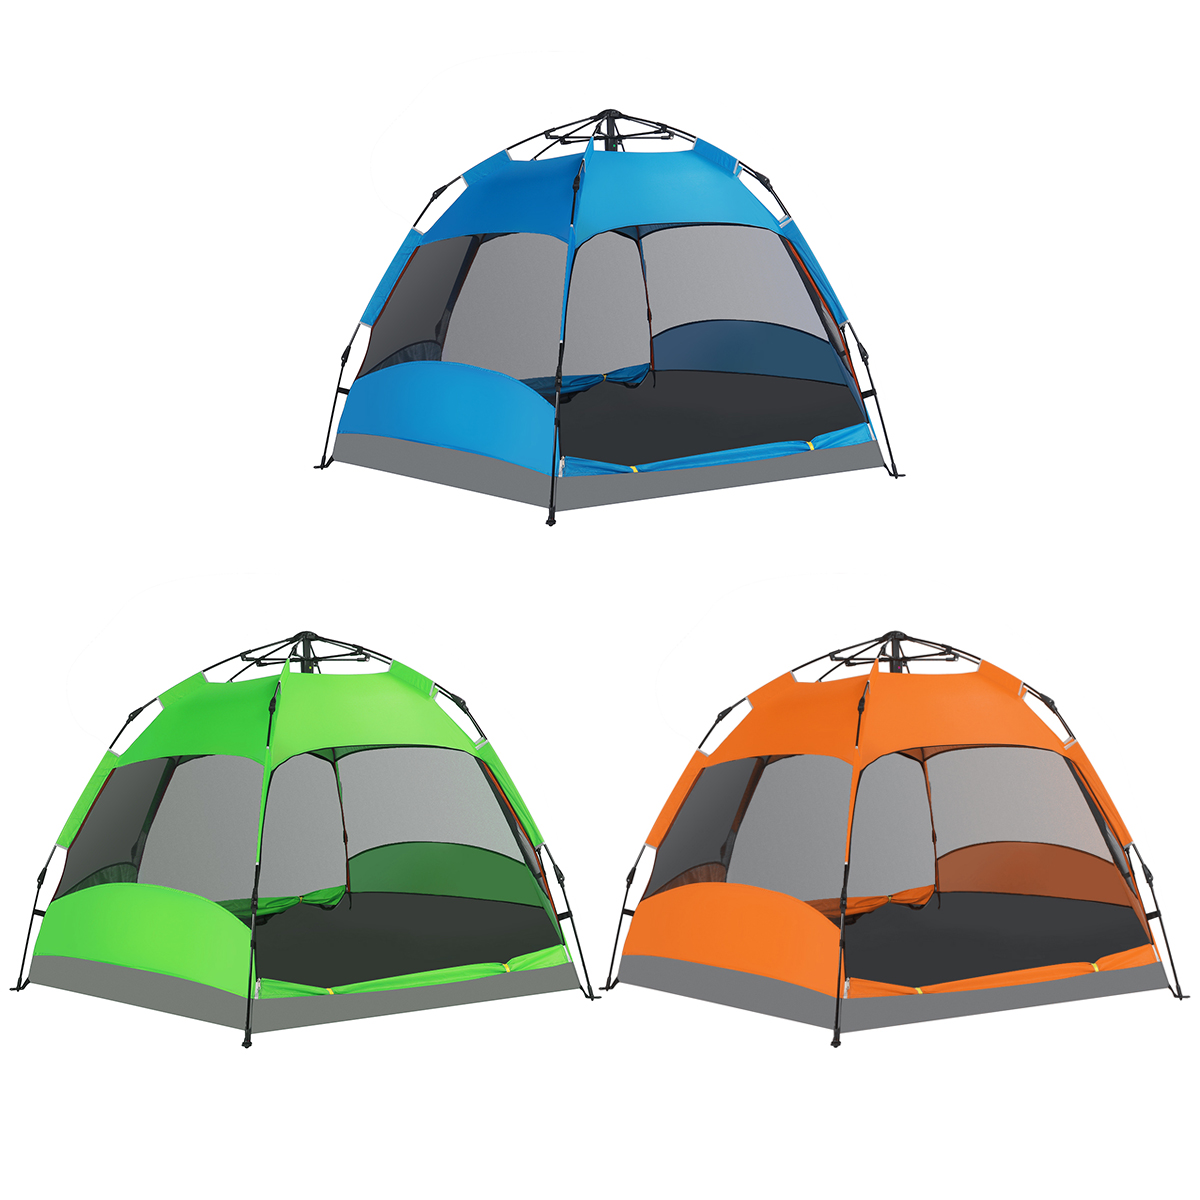 5-8 Person Portable Camping Tent Anti-Sun Waterproof Double Layer Fully Auto Outdoor Camping Tent